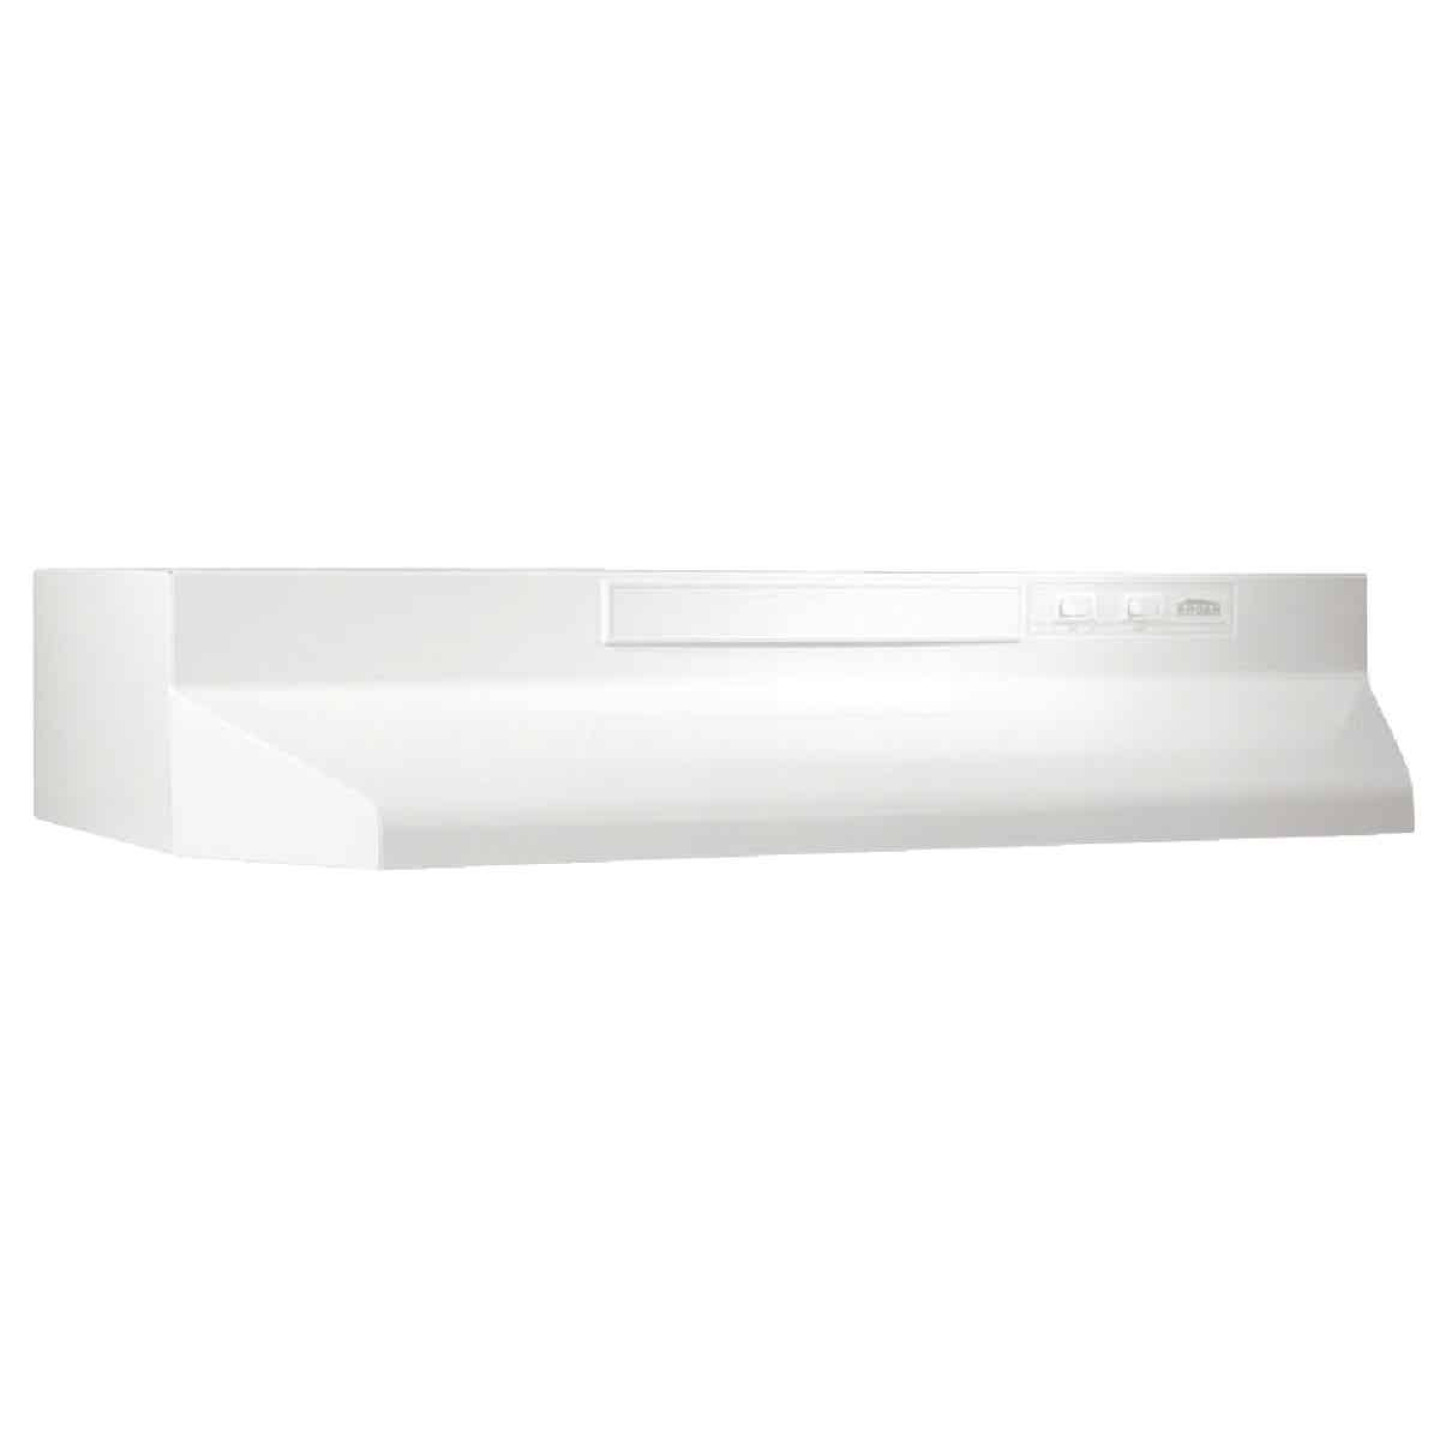 Broan-Nutone F Series 36 In. Convertible White Range Hood Image 1